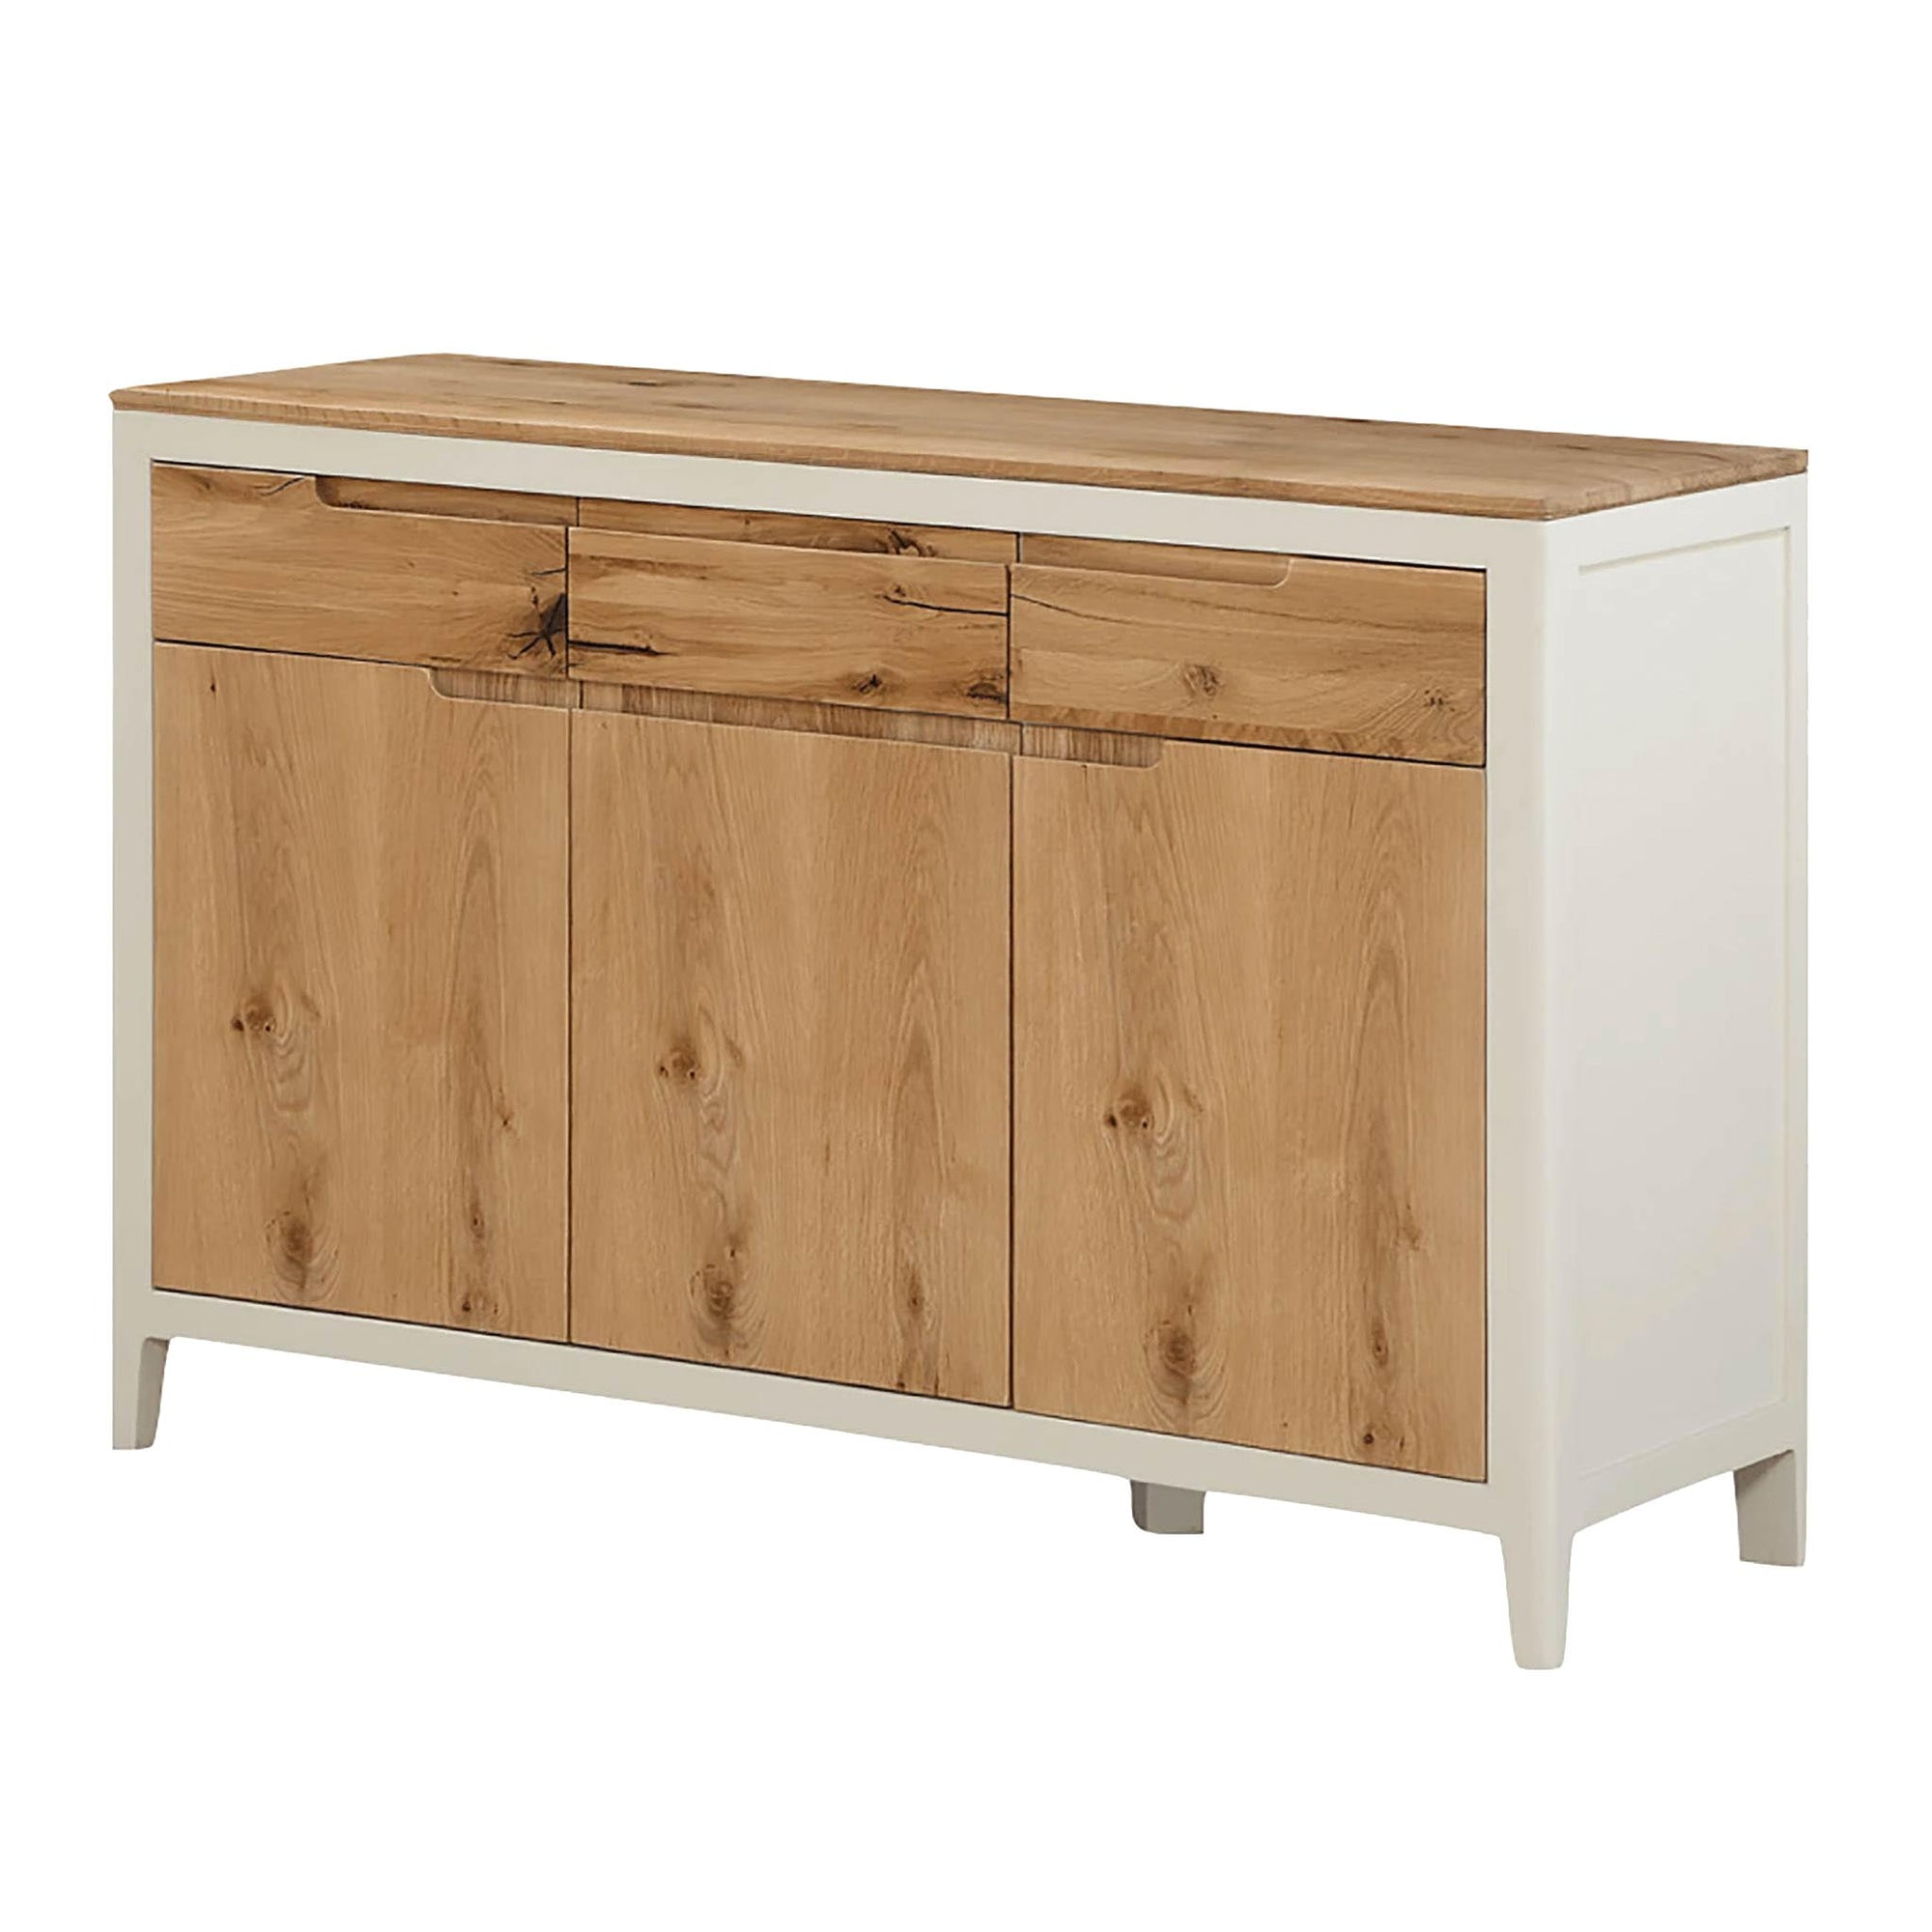 Dunmore Painted Large 3 Door Sideboard Unit by Roseland Furniture